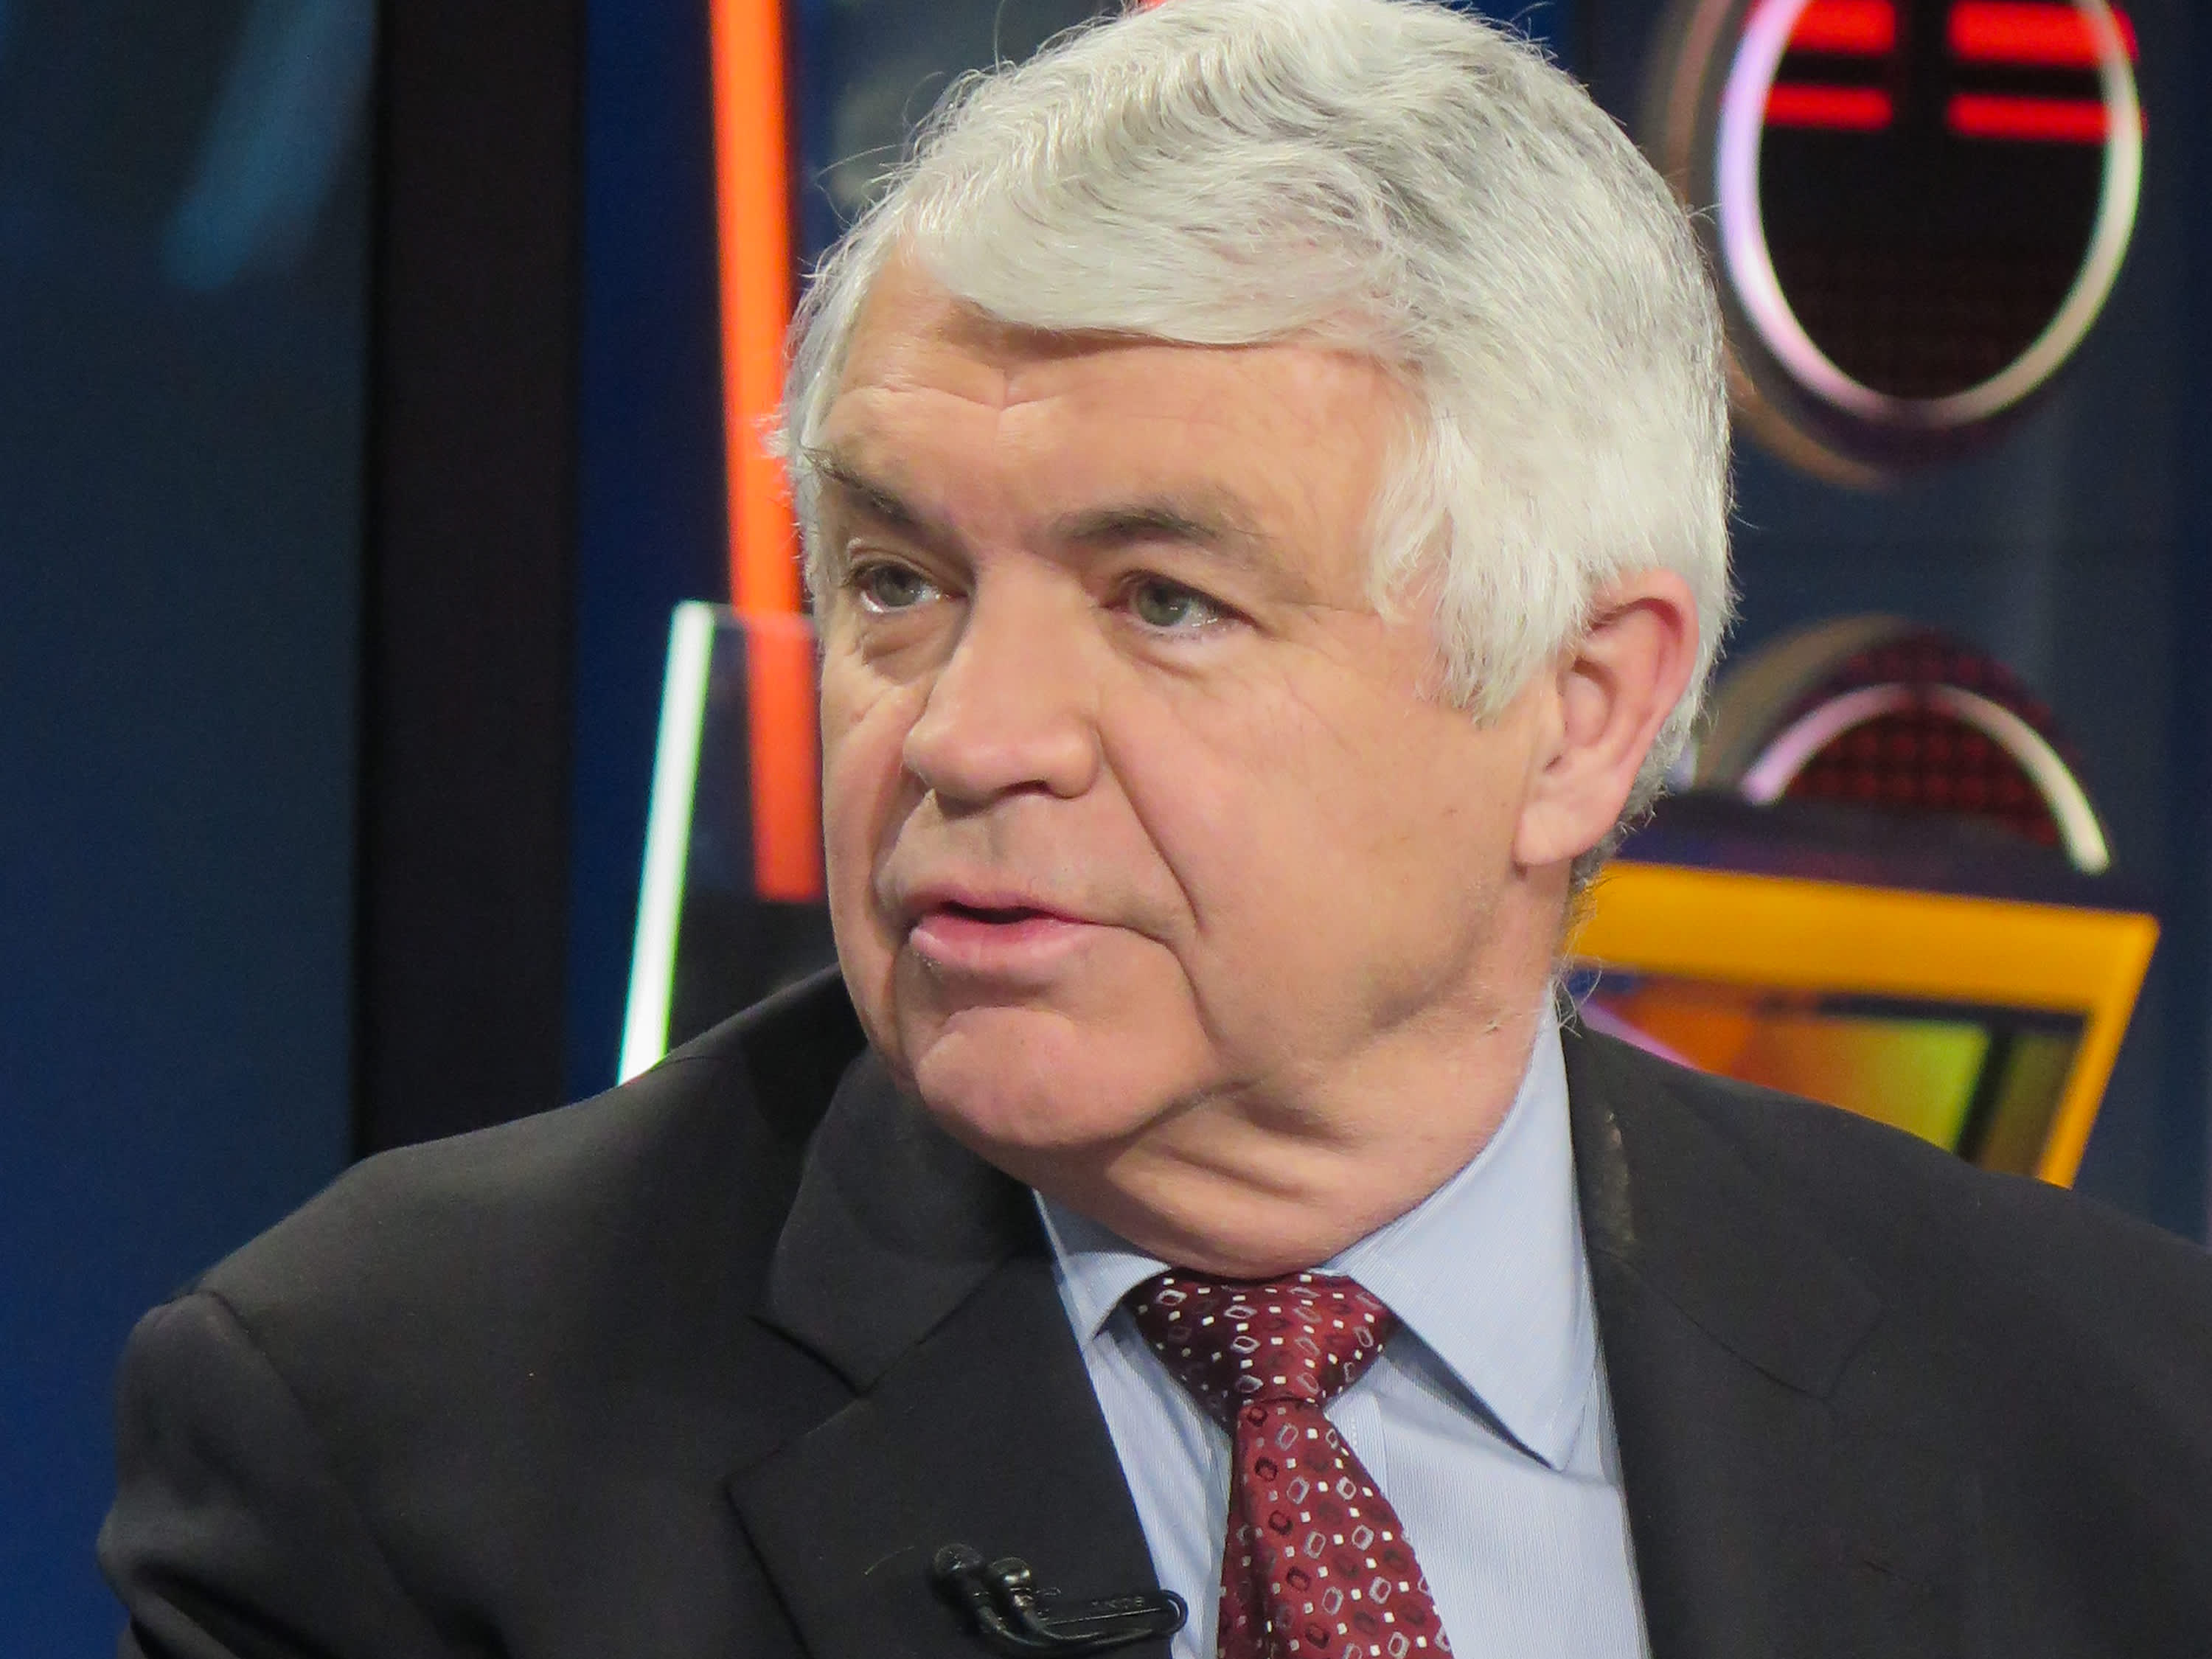 Economist John Taylor thinks the Fed is 'in a better place' with interest rates